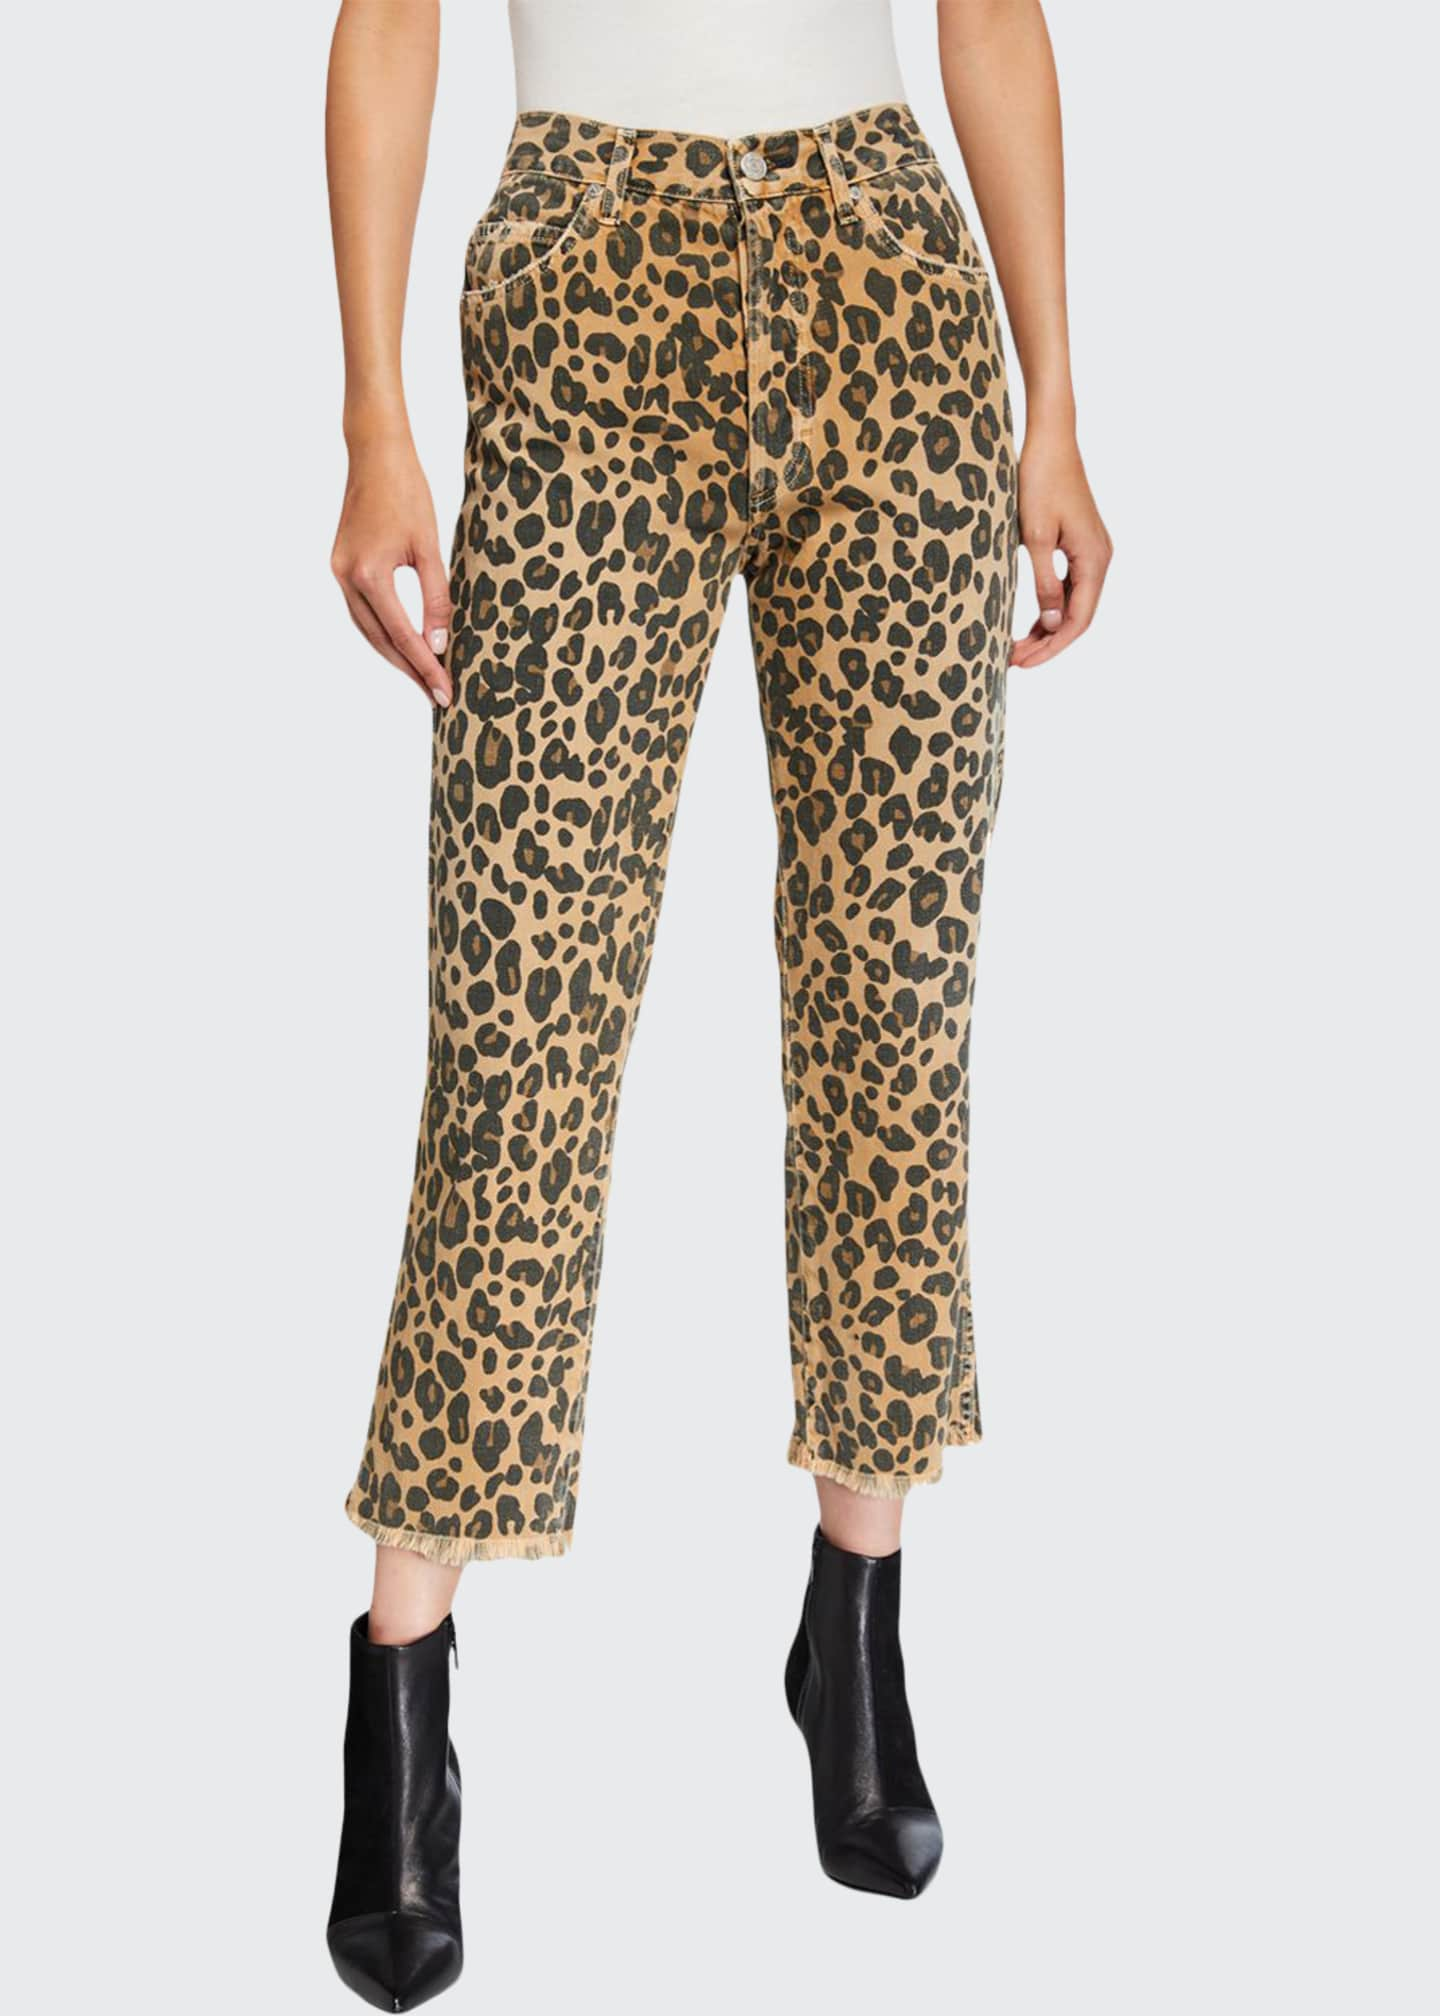 AMO Denim Loverboy Leopard-Print Relaxed Cropped Straight Jeans